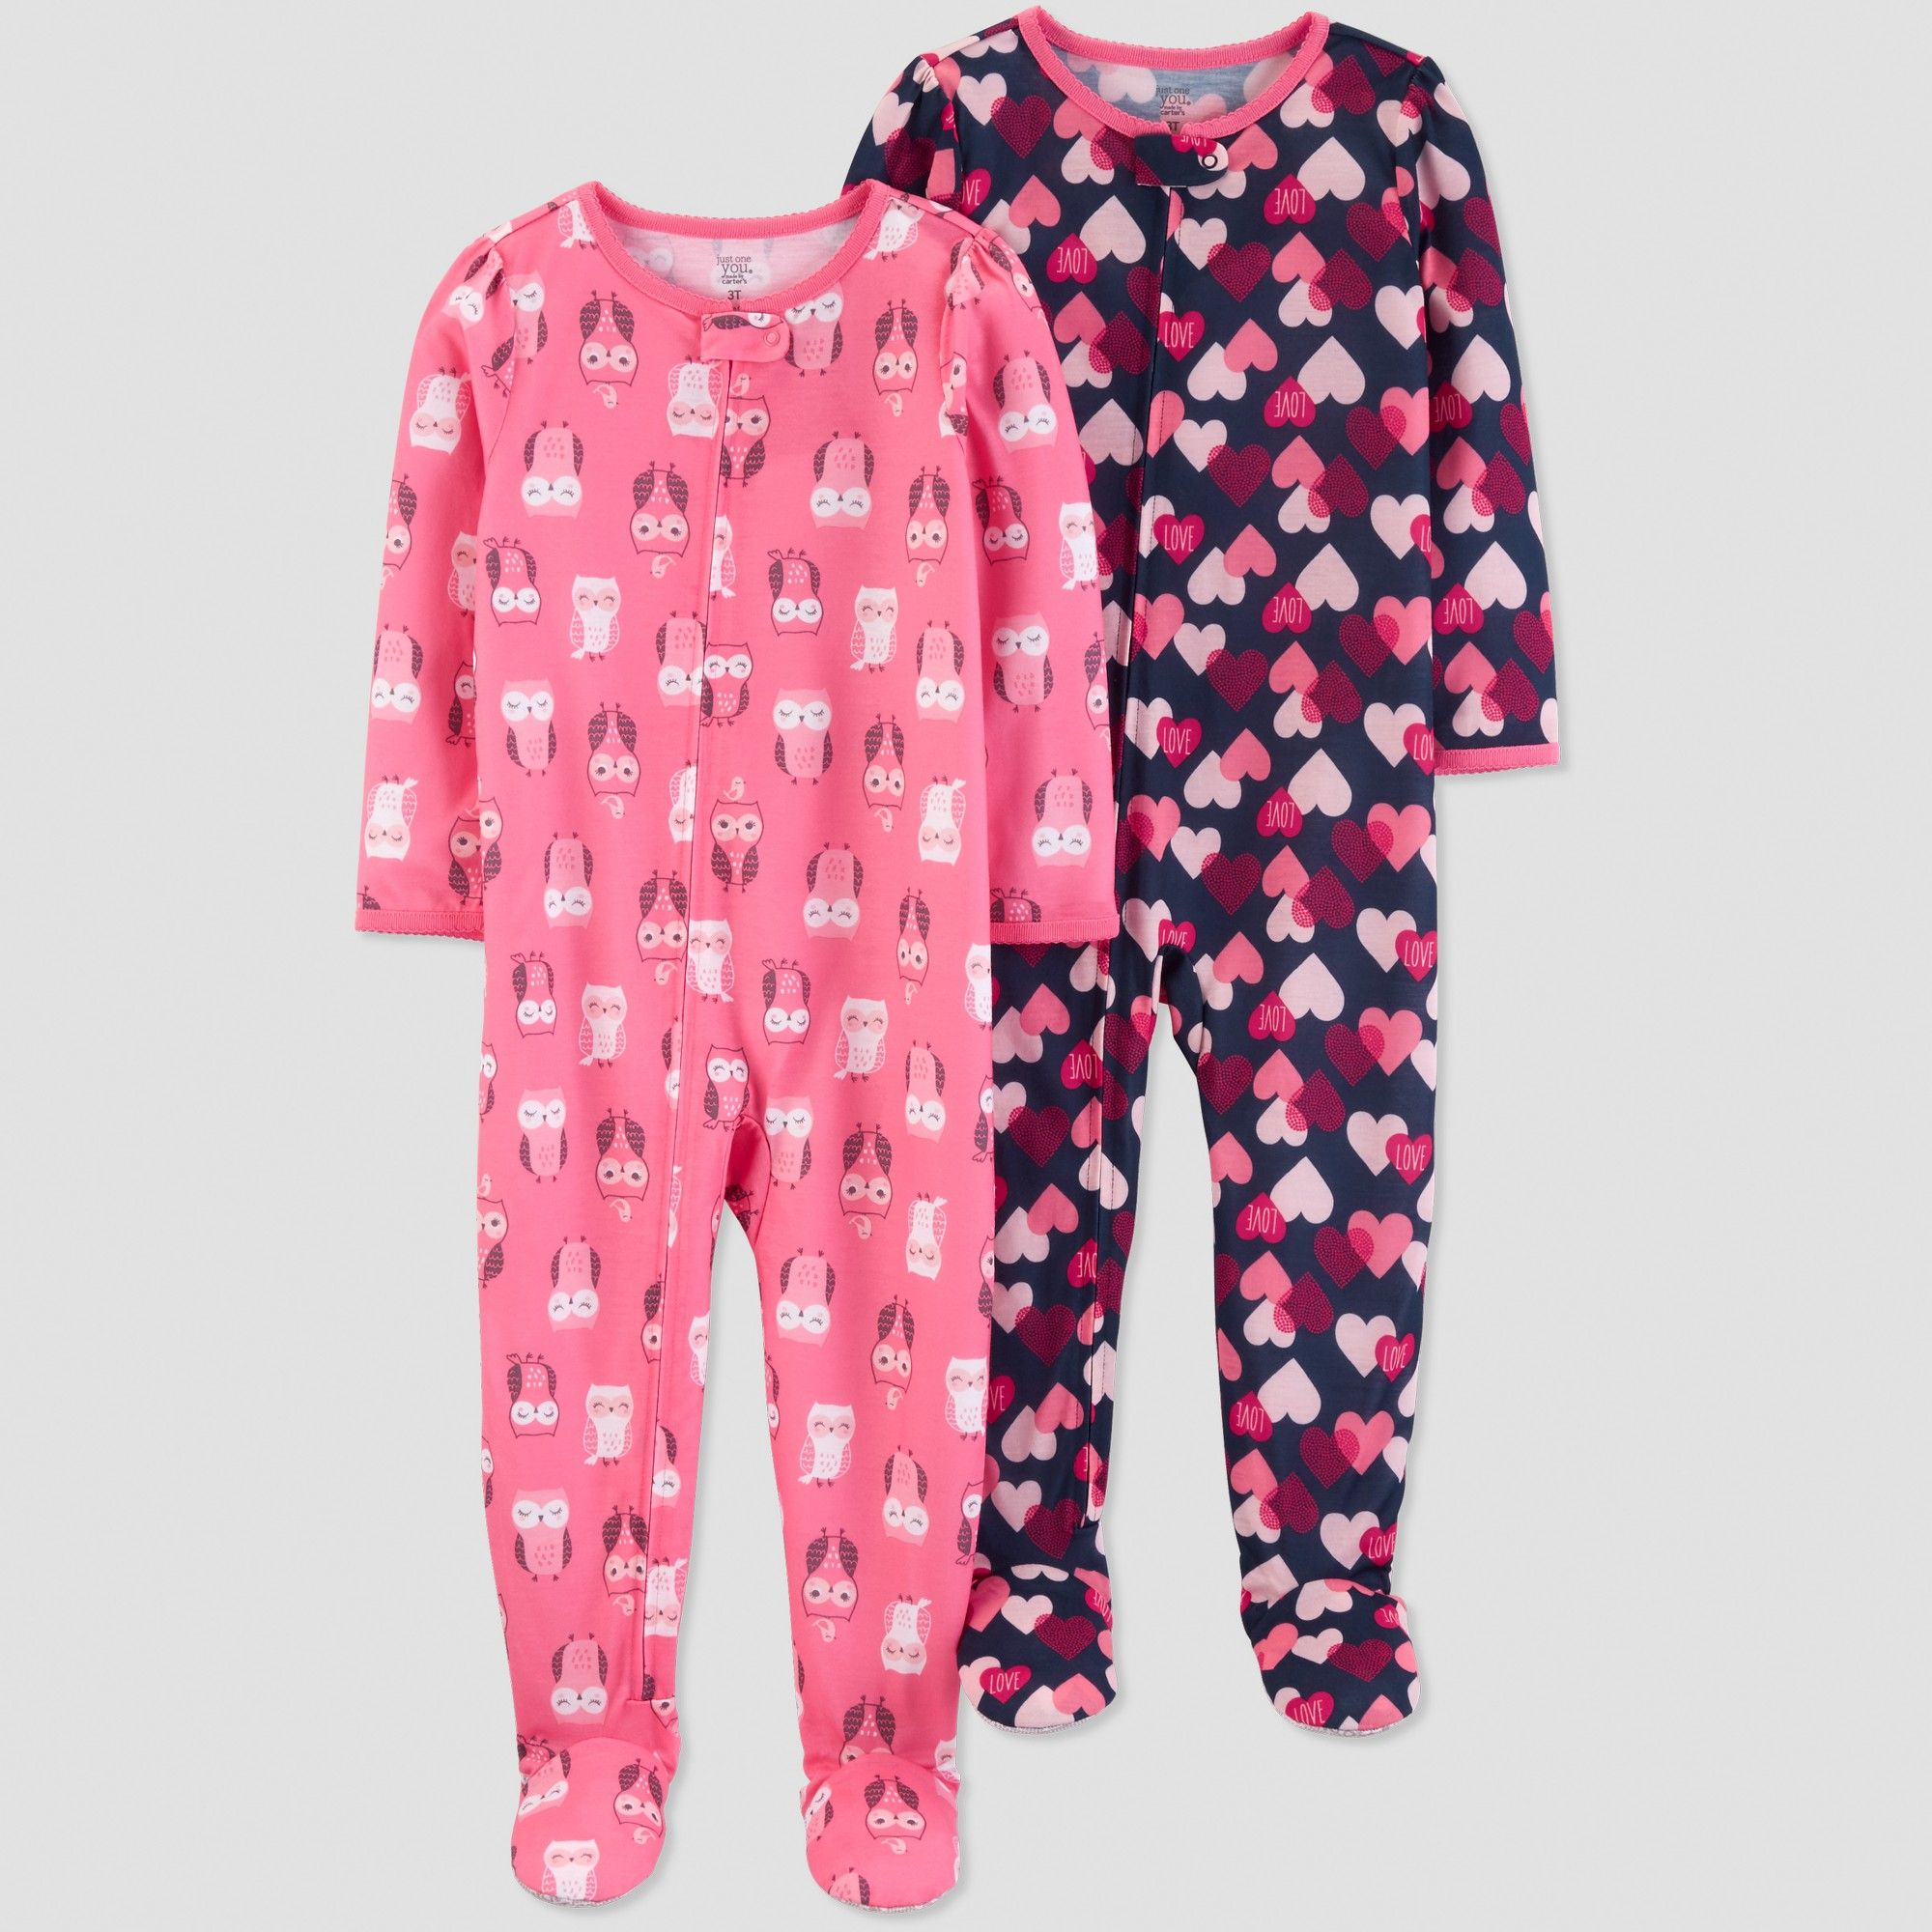 99261d2c9 Toddler Girls  Owls Pajama Set - Just One You made by carter s Pink ...